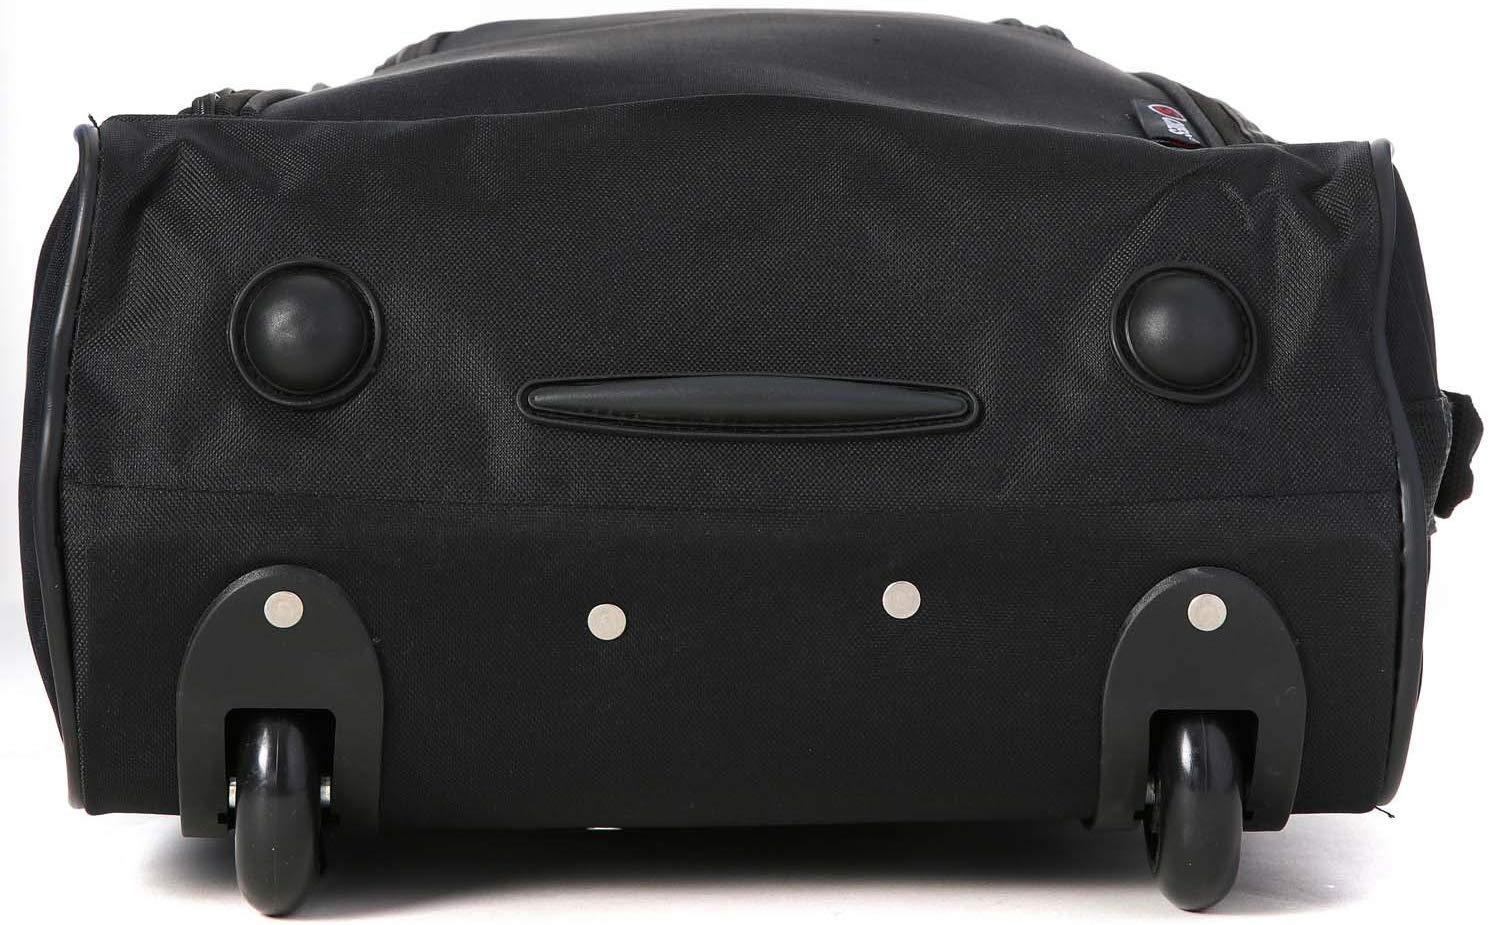 5-Cities-Lufthansa-Cabin-Approved-Trolley-Bag-Koffer-40x20x25-Max-Gre-Reisetasche-Set